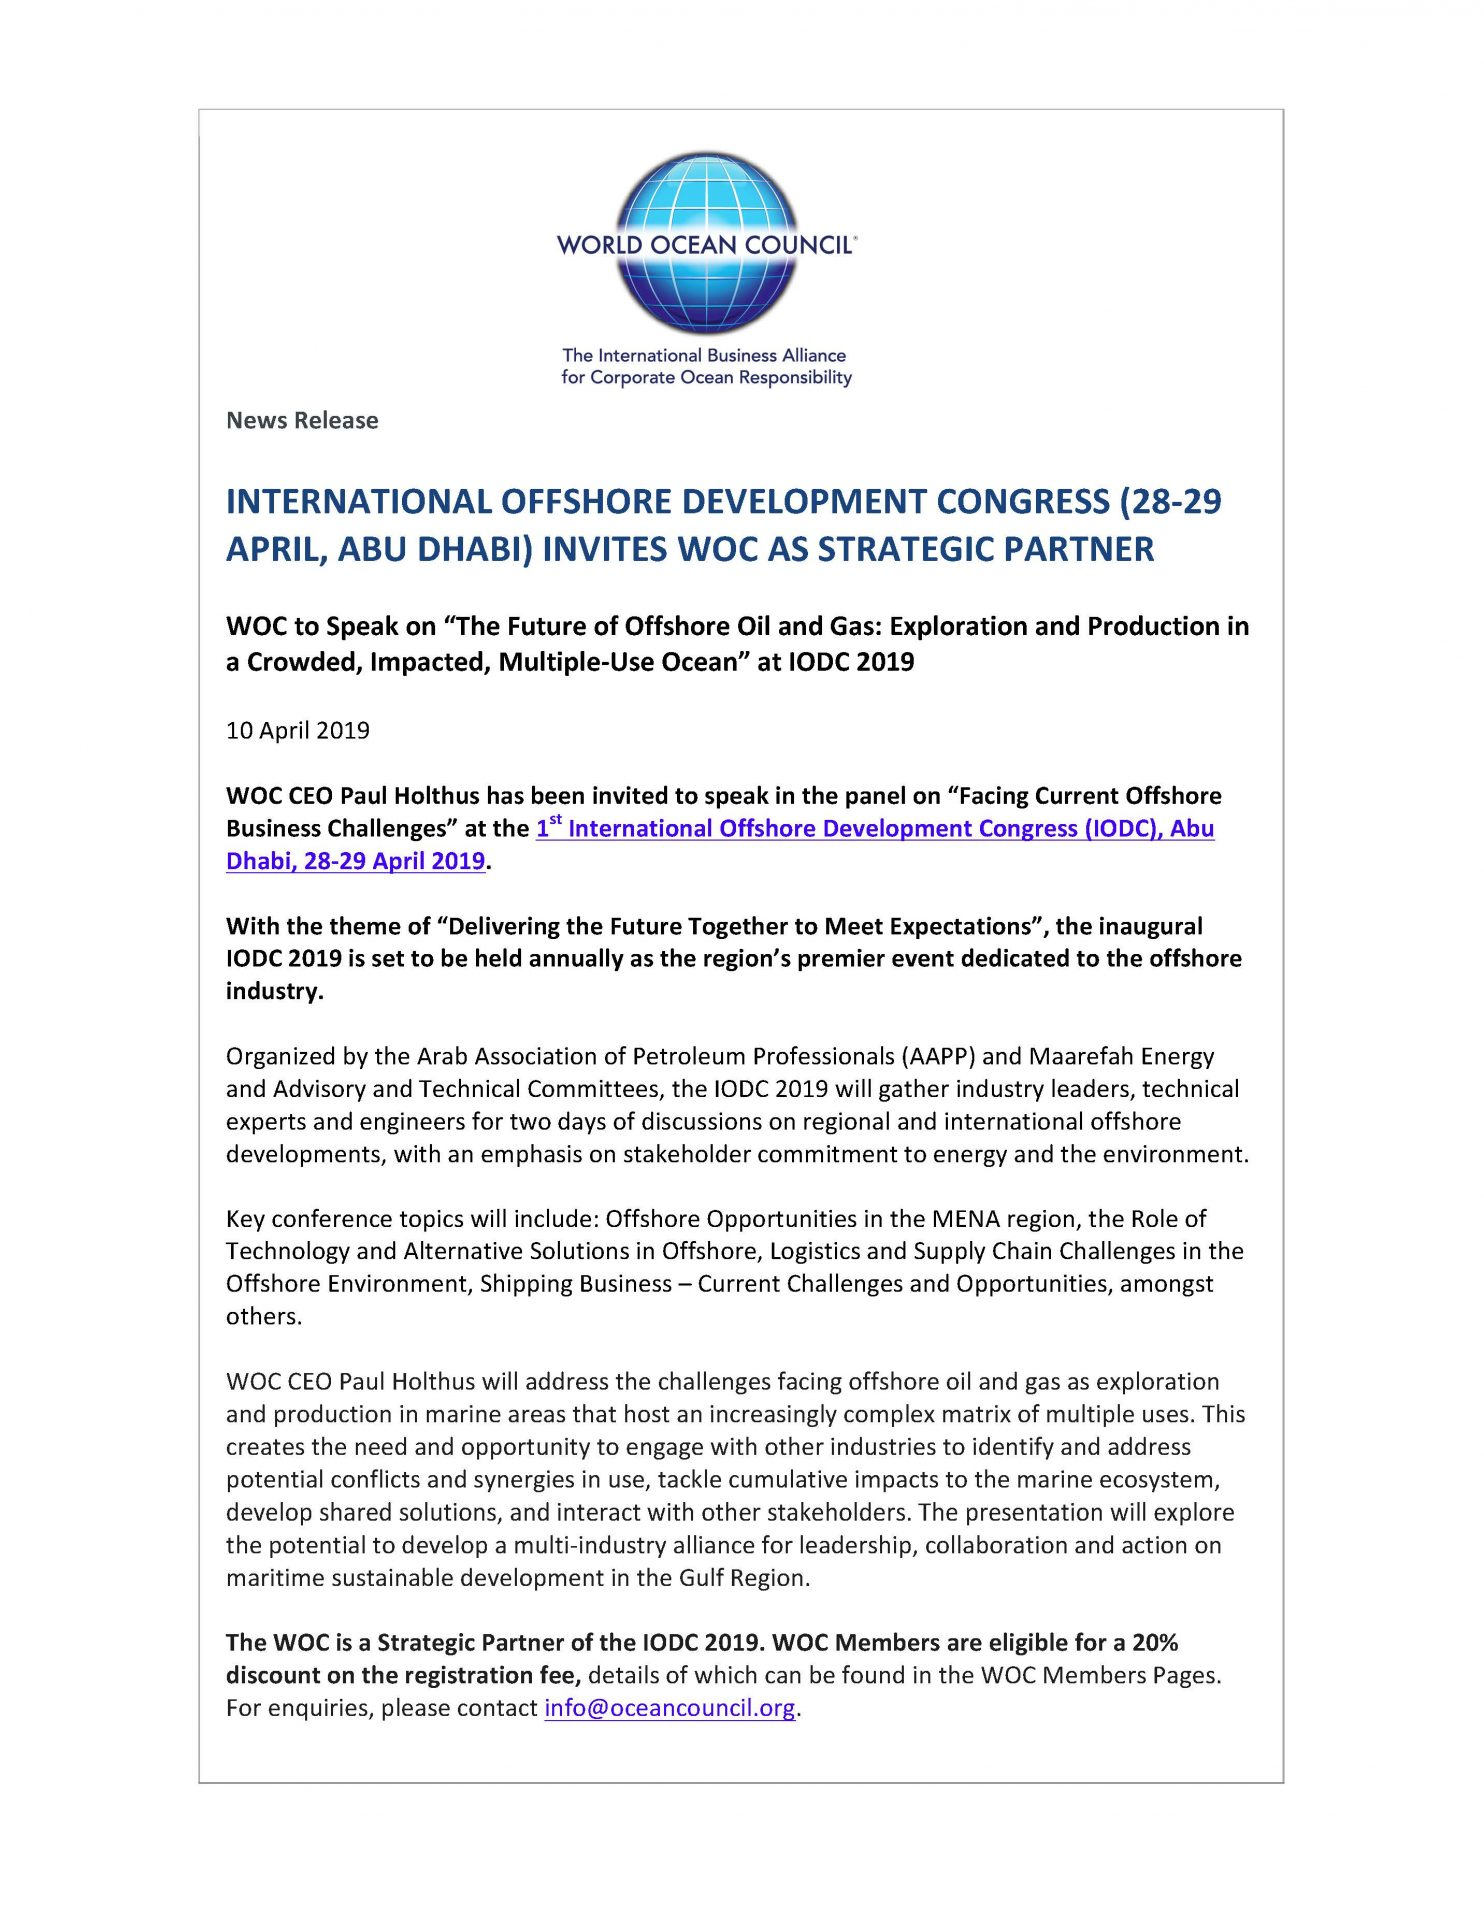 International Offshore Development Congress (28-29 Apr, Abu Dhabi) Invites WOC as Strategic Partner - 10 April 2019